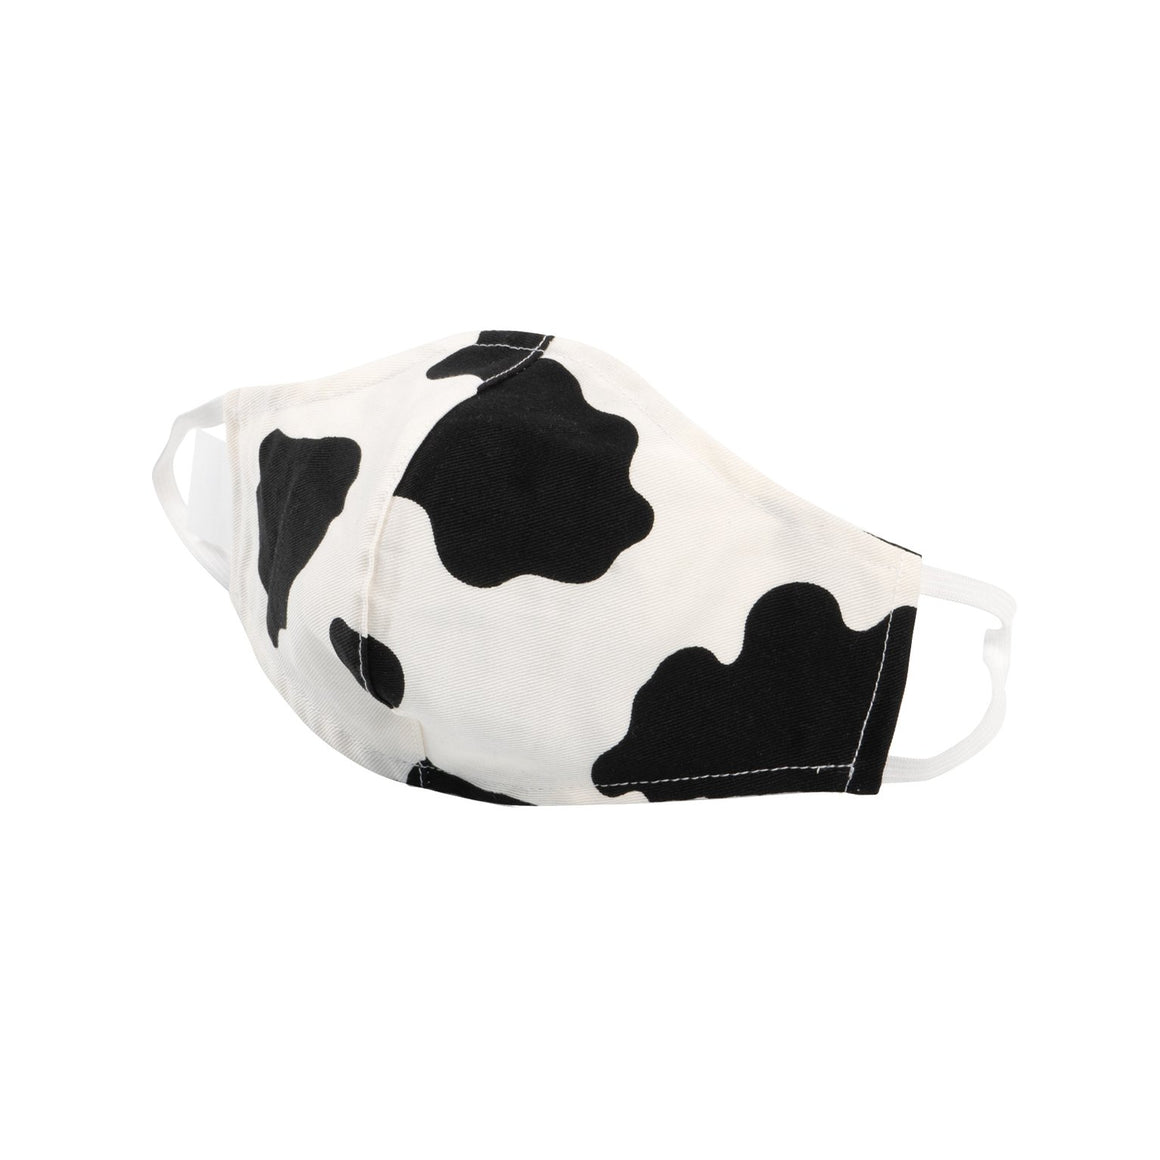 Adult Protective Face Mask - Cow Print Twill